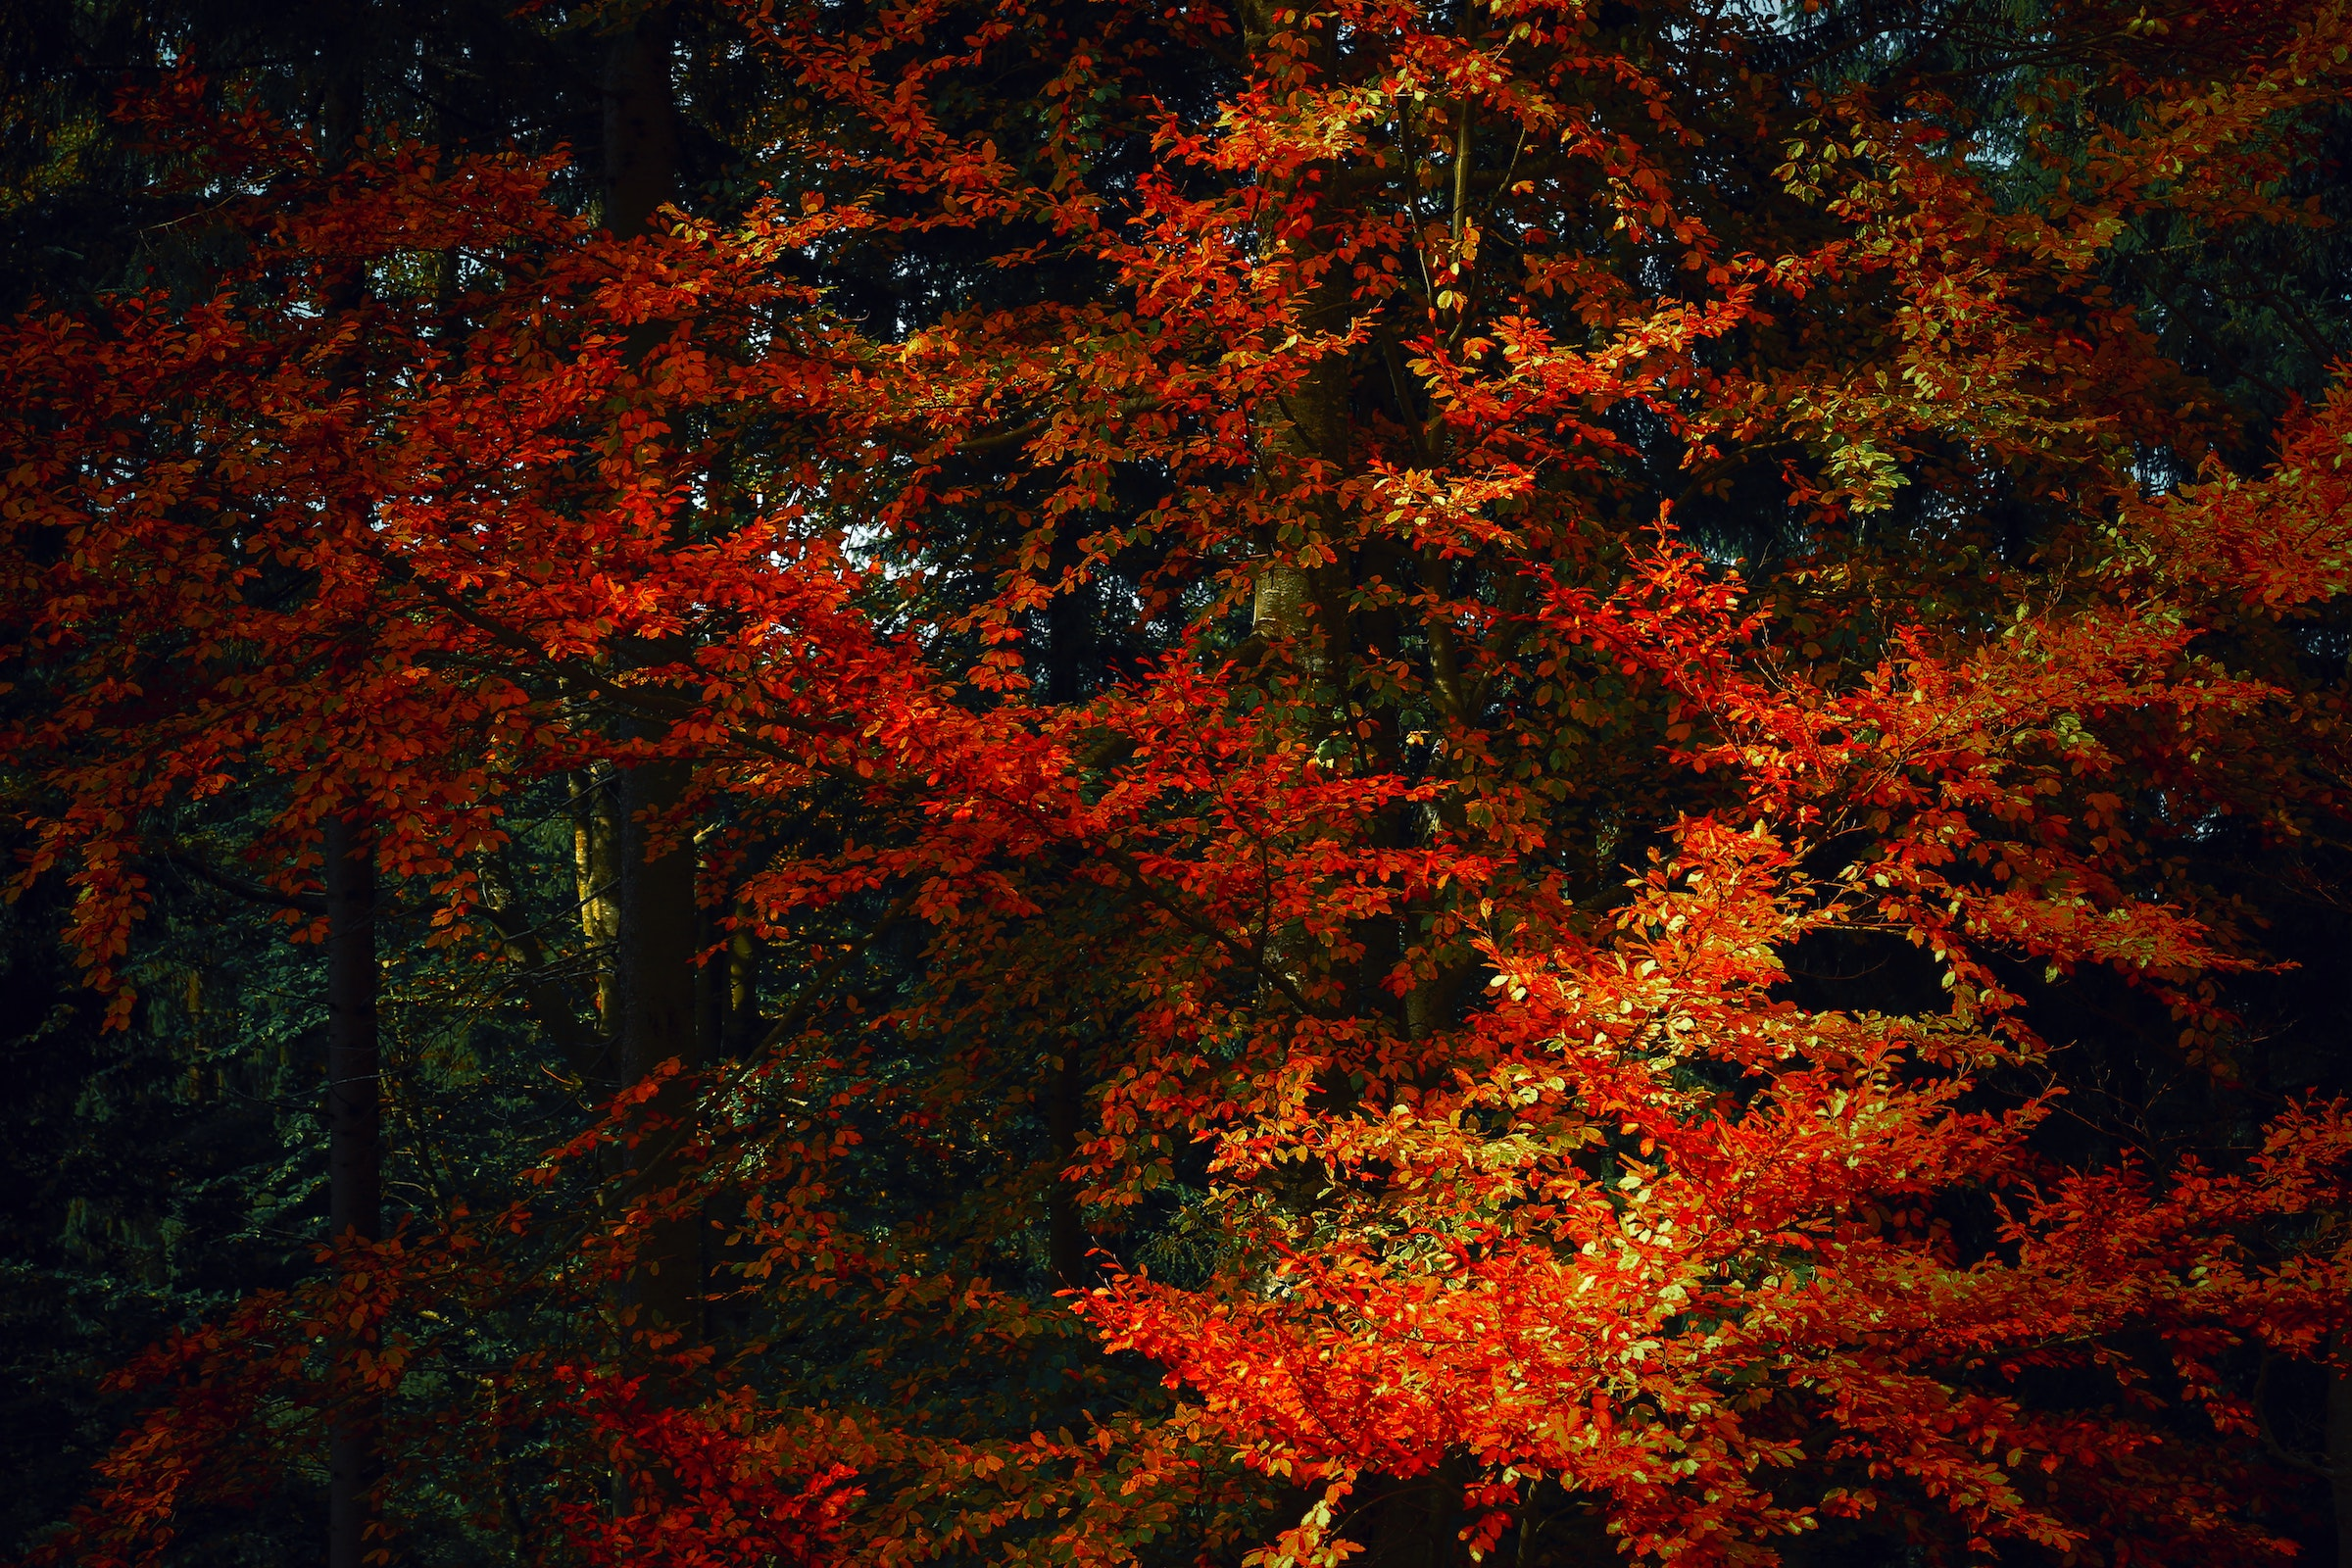 Red, yellow, orange, and green foliage